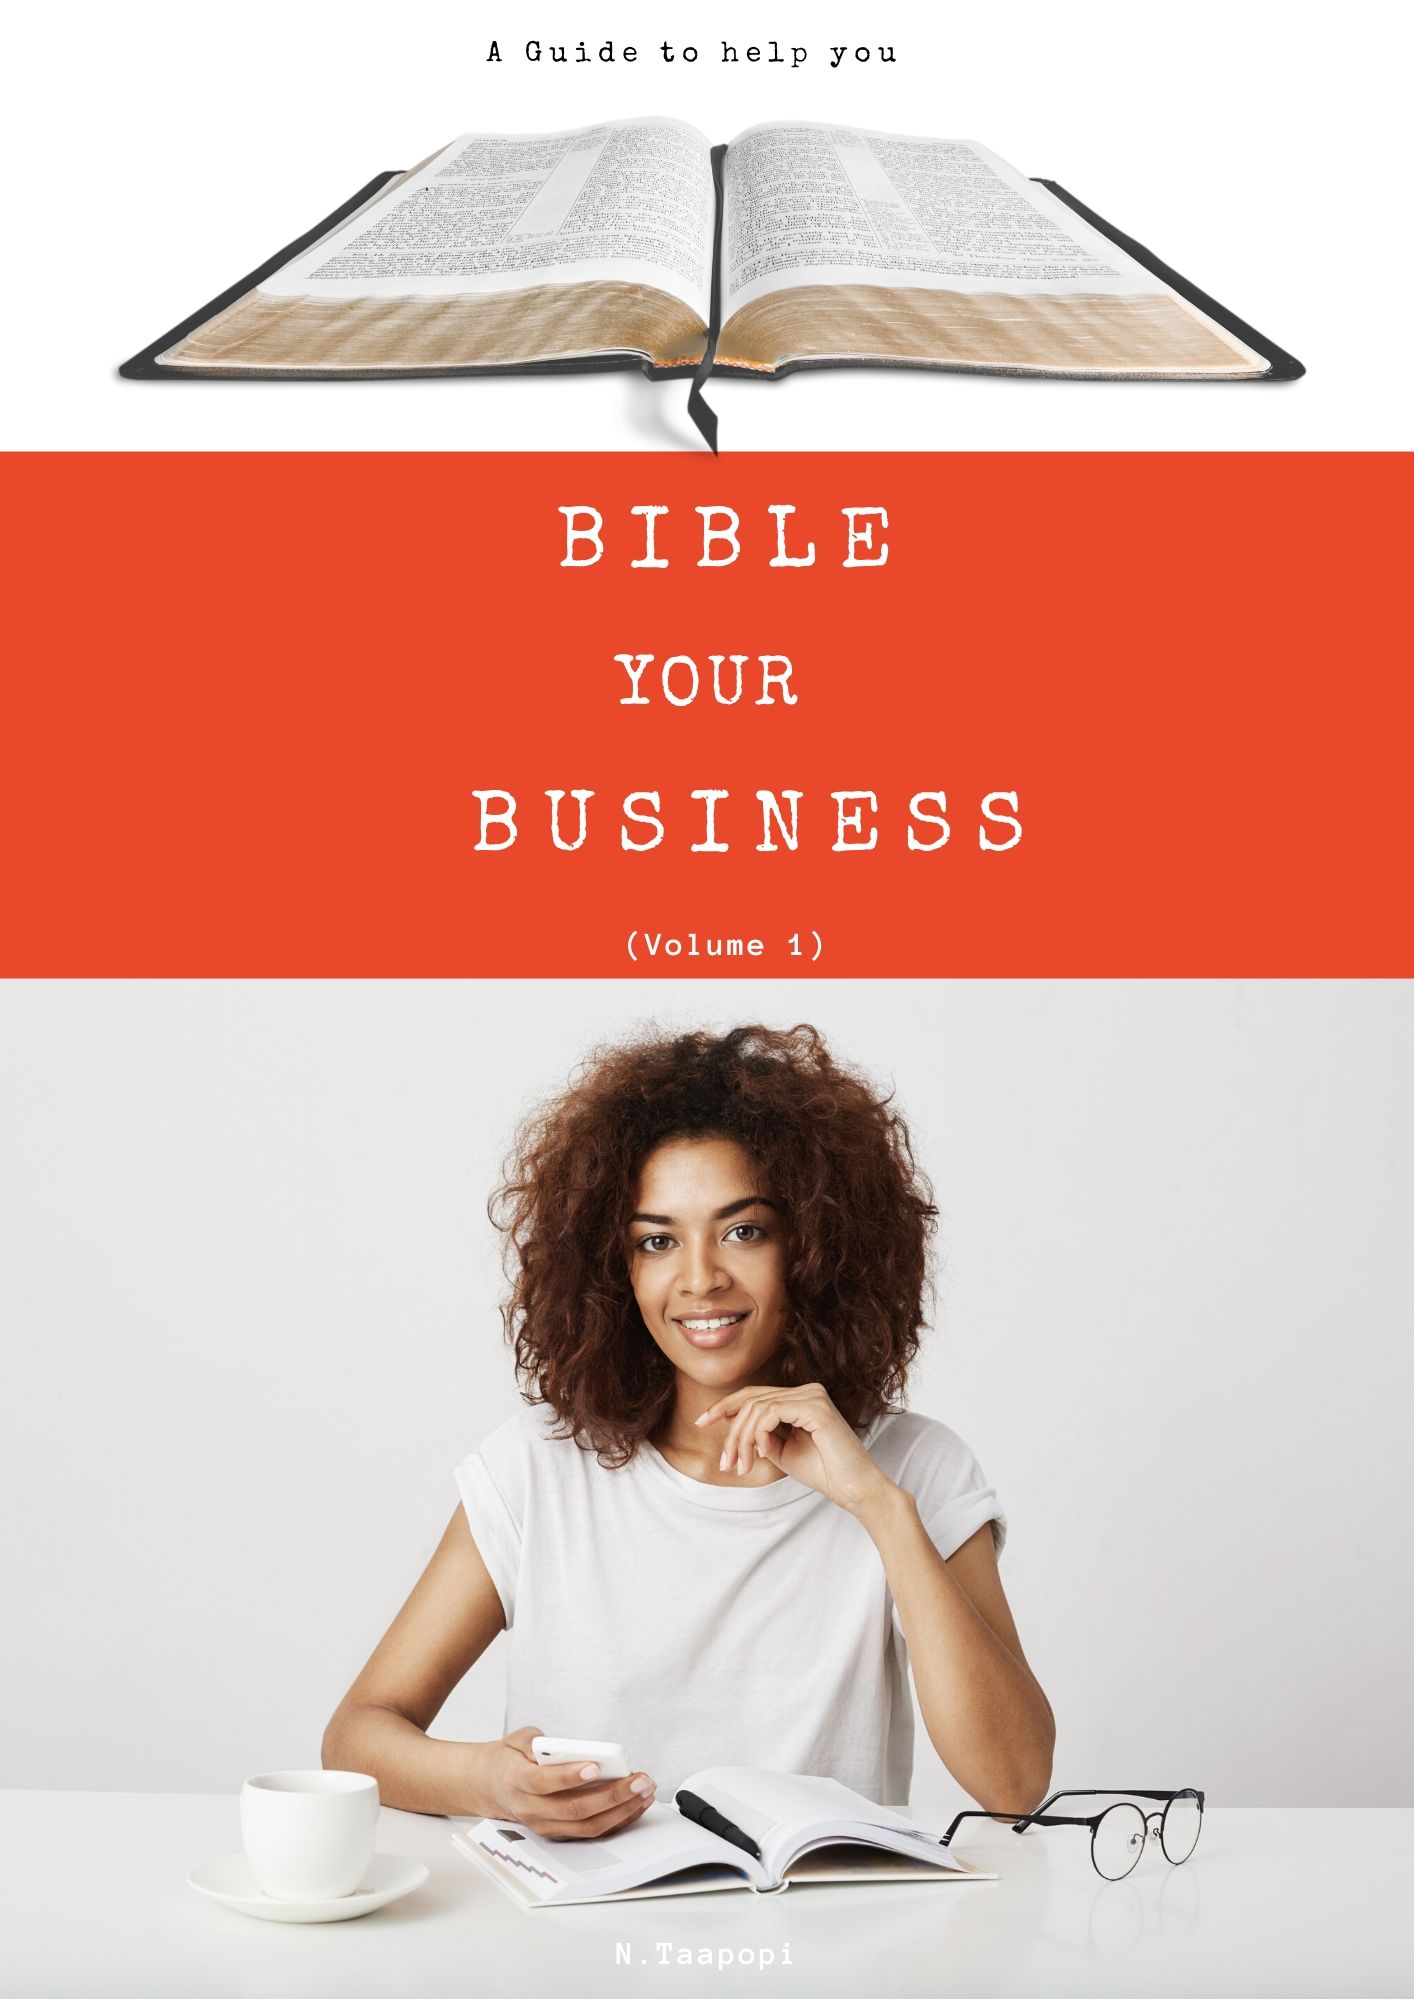 BIBLE Your BUSINESS: A Guide To Help You